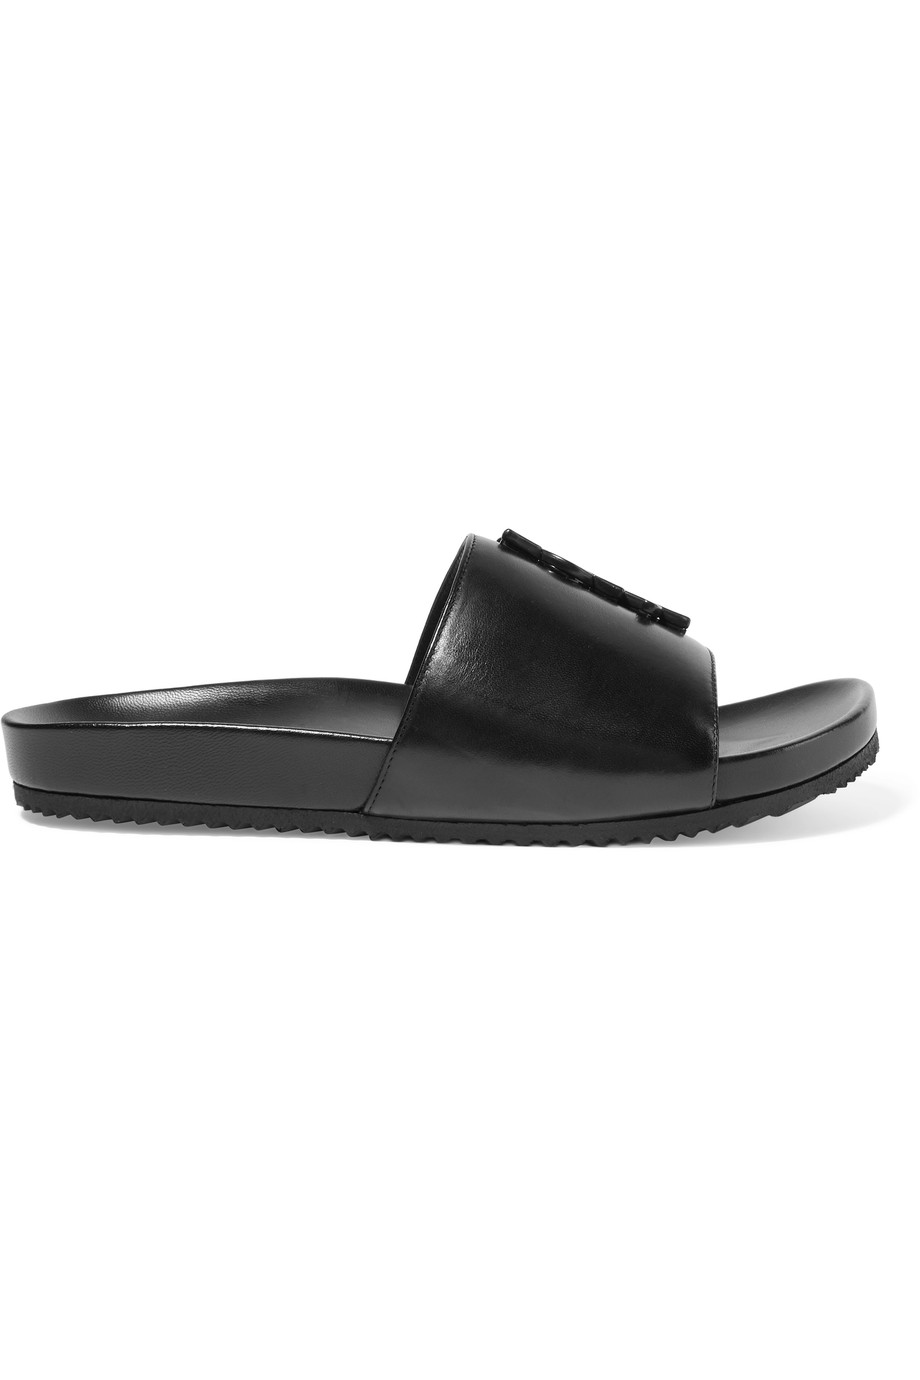 Saint Laurent Joan embellished-leather slides